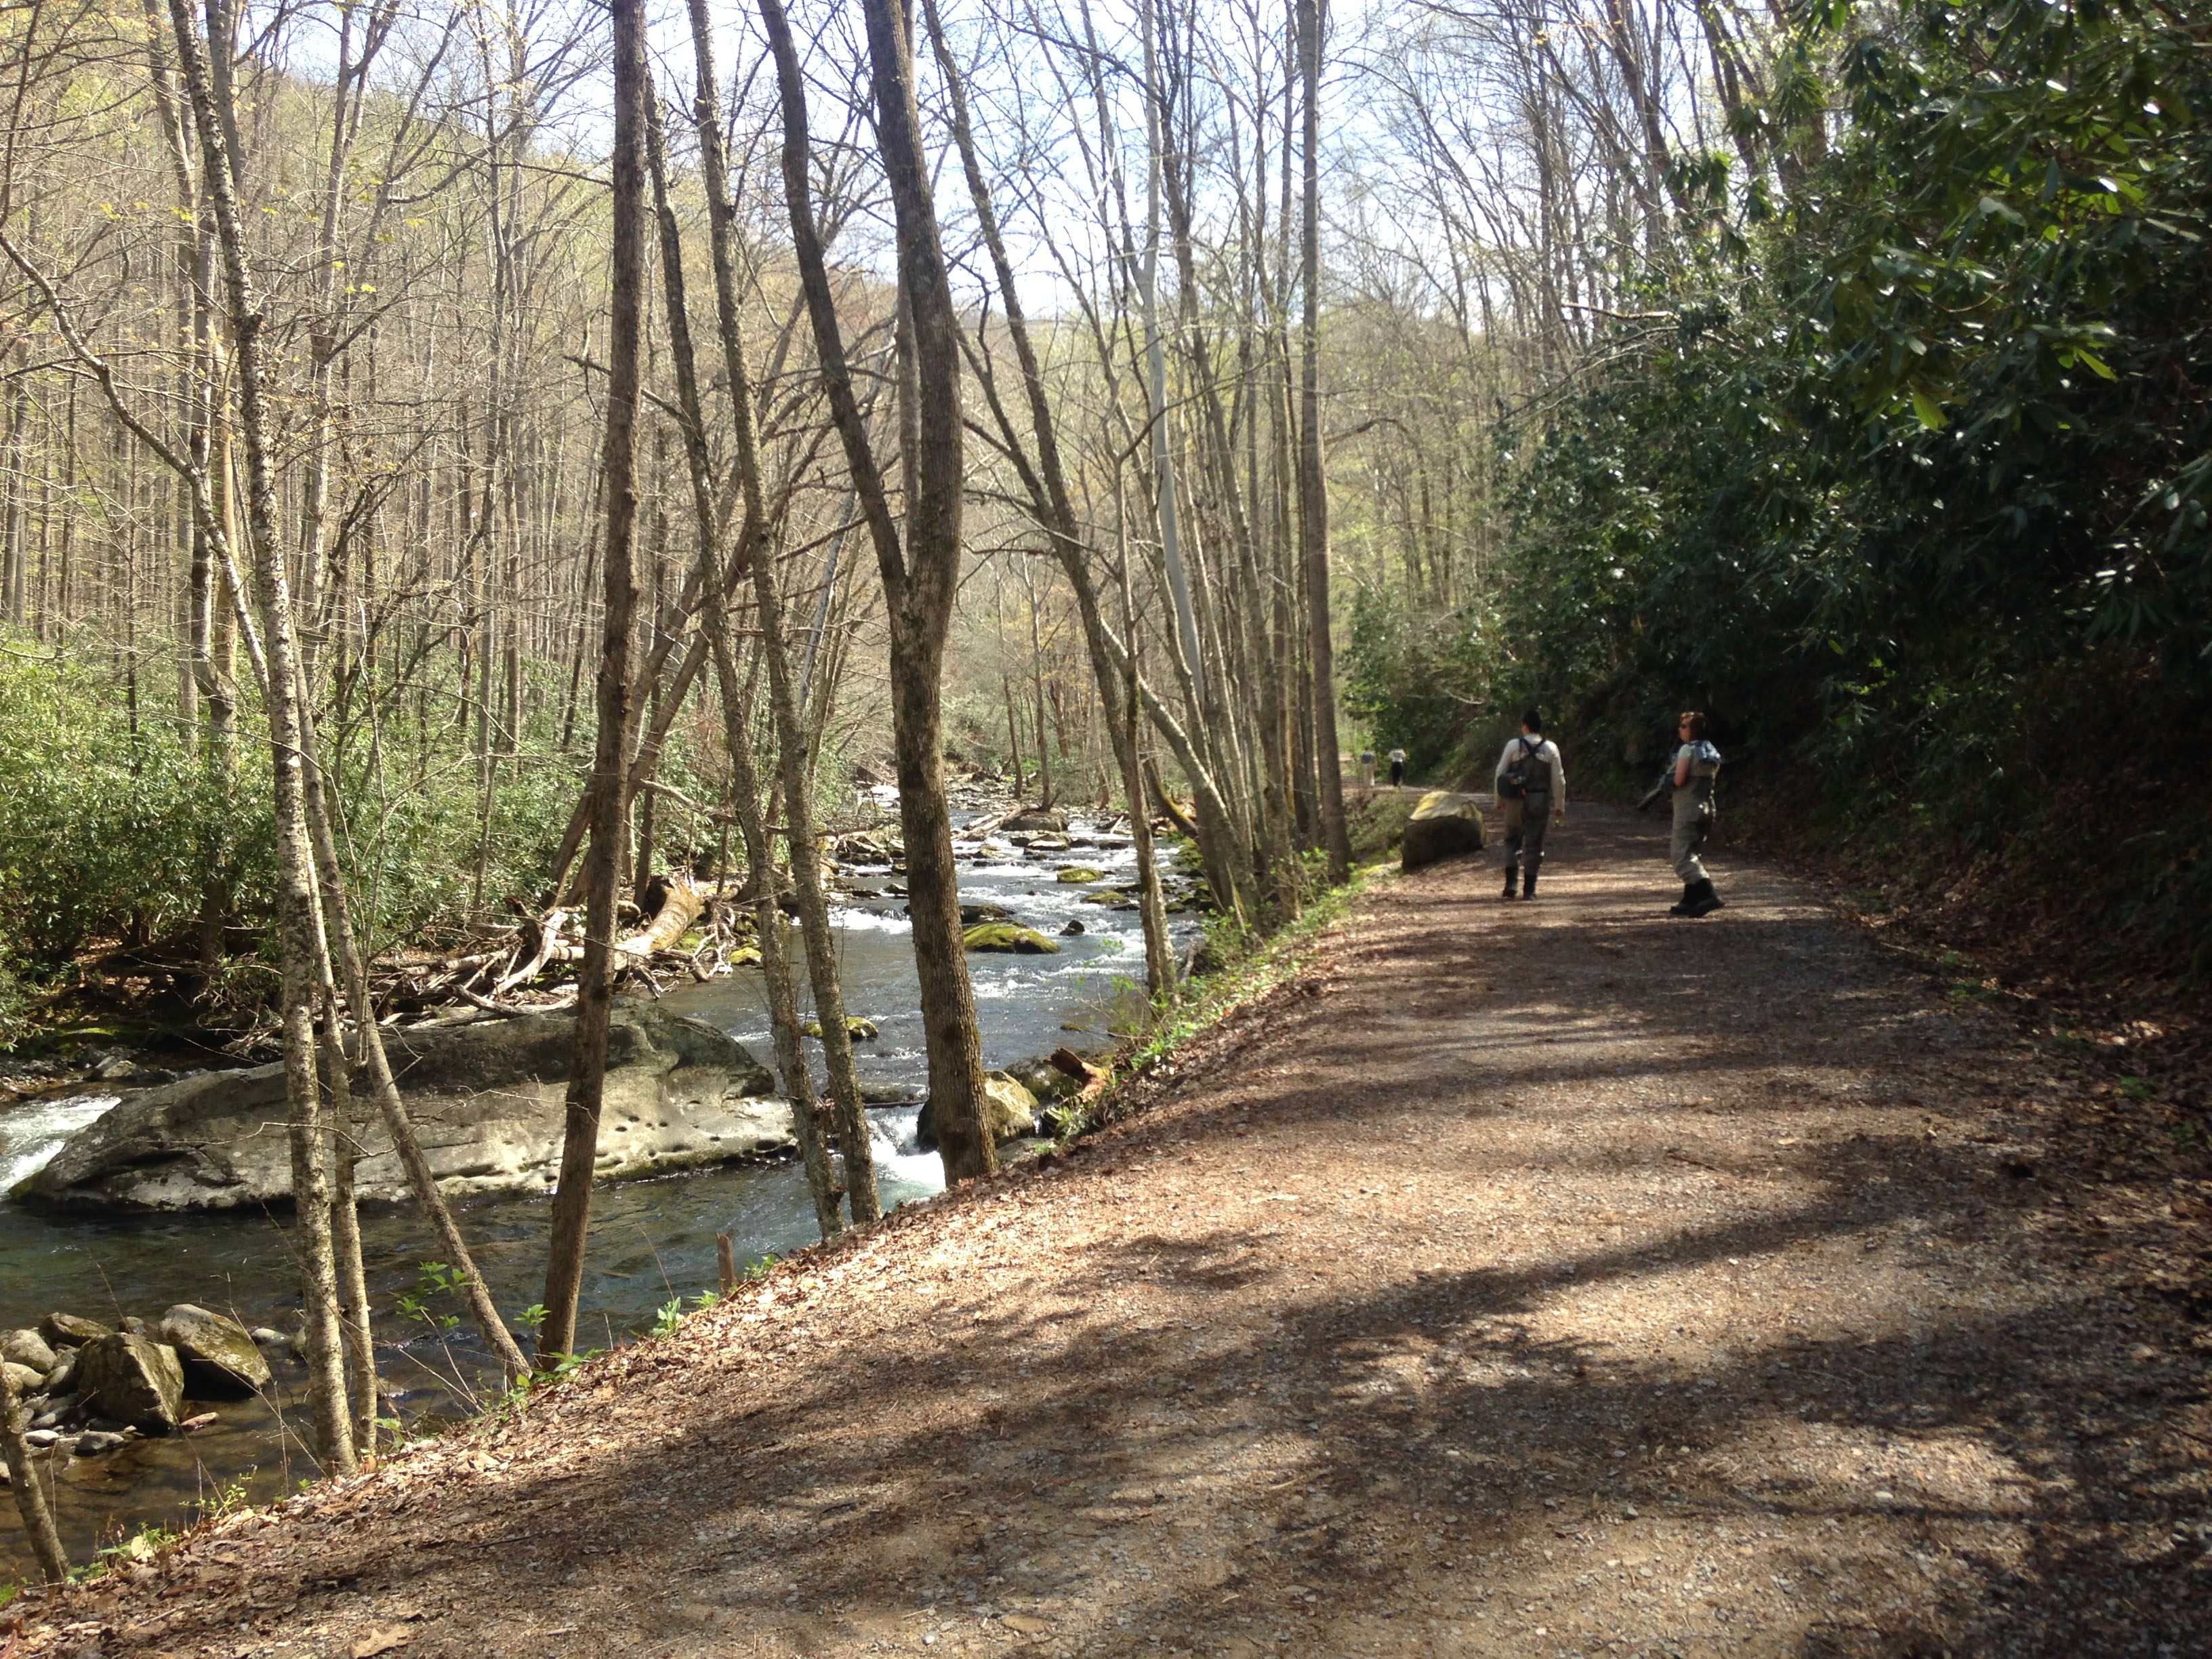 elkmont dating Fort hampton outfitters: just a great amazing kayak trip down the river - see 3 traveler reviews, 3 candid photos, and great deals for elkmont, al, at tripadvisor.